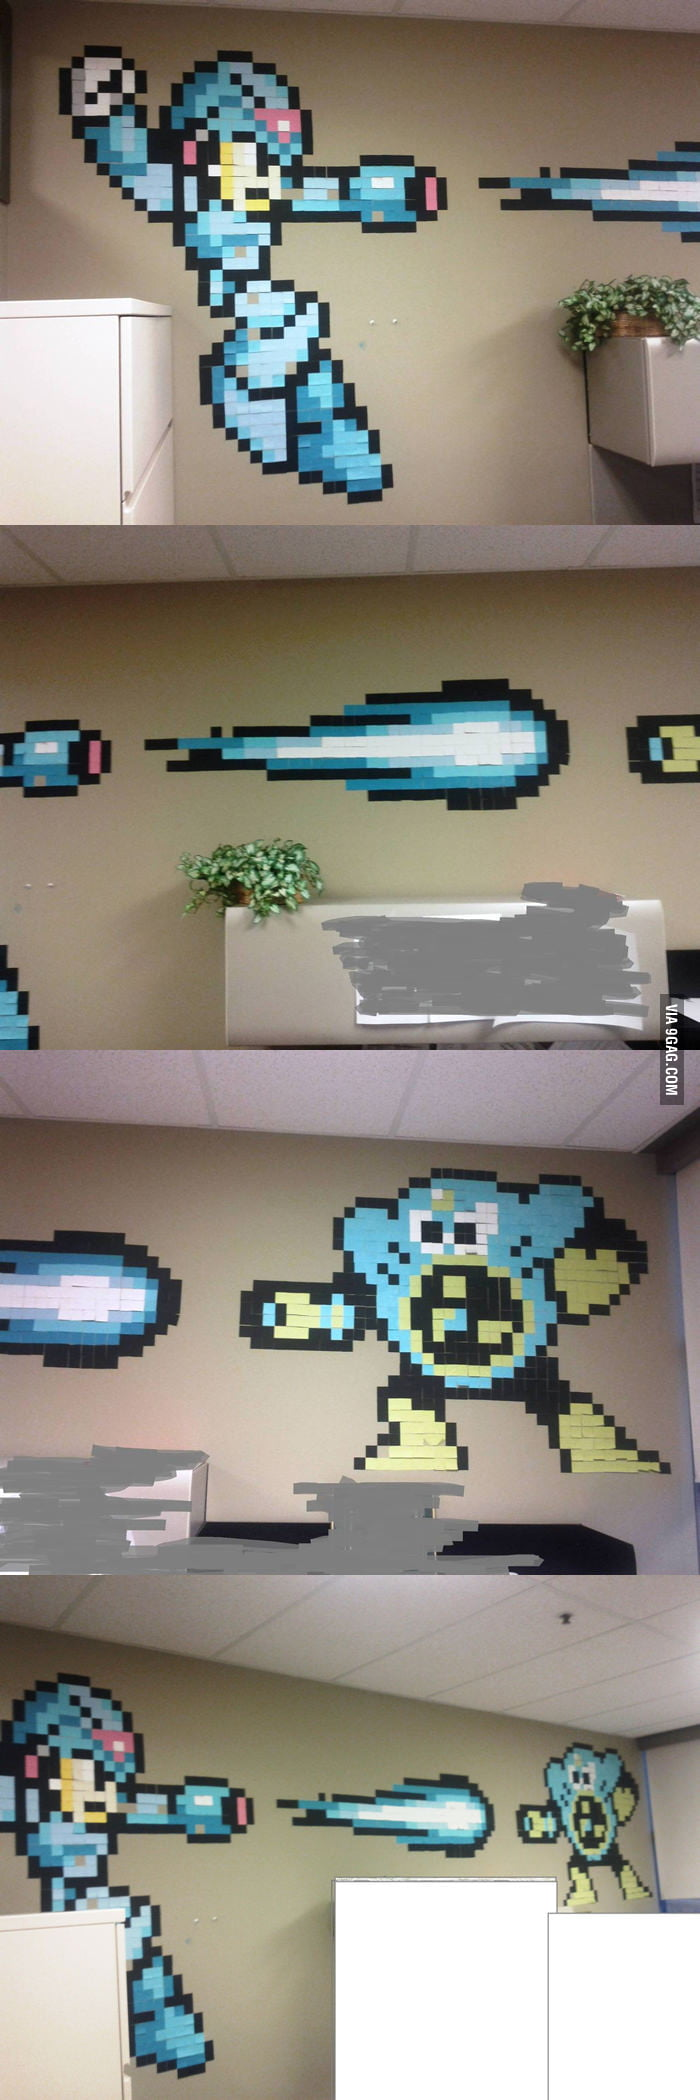 Mega Man made of Post-it notes